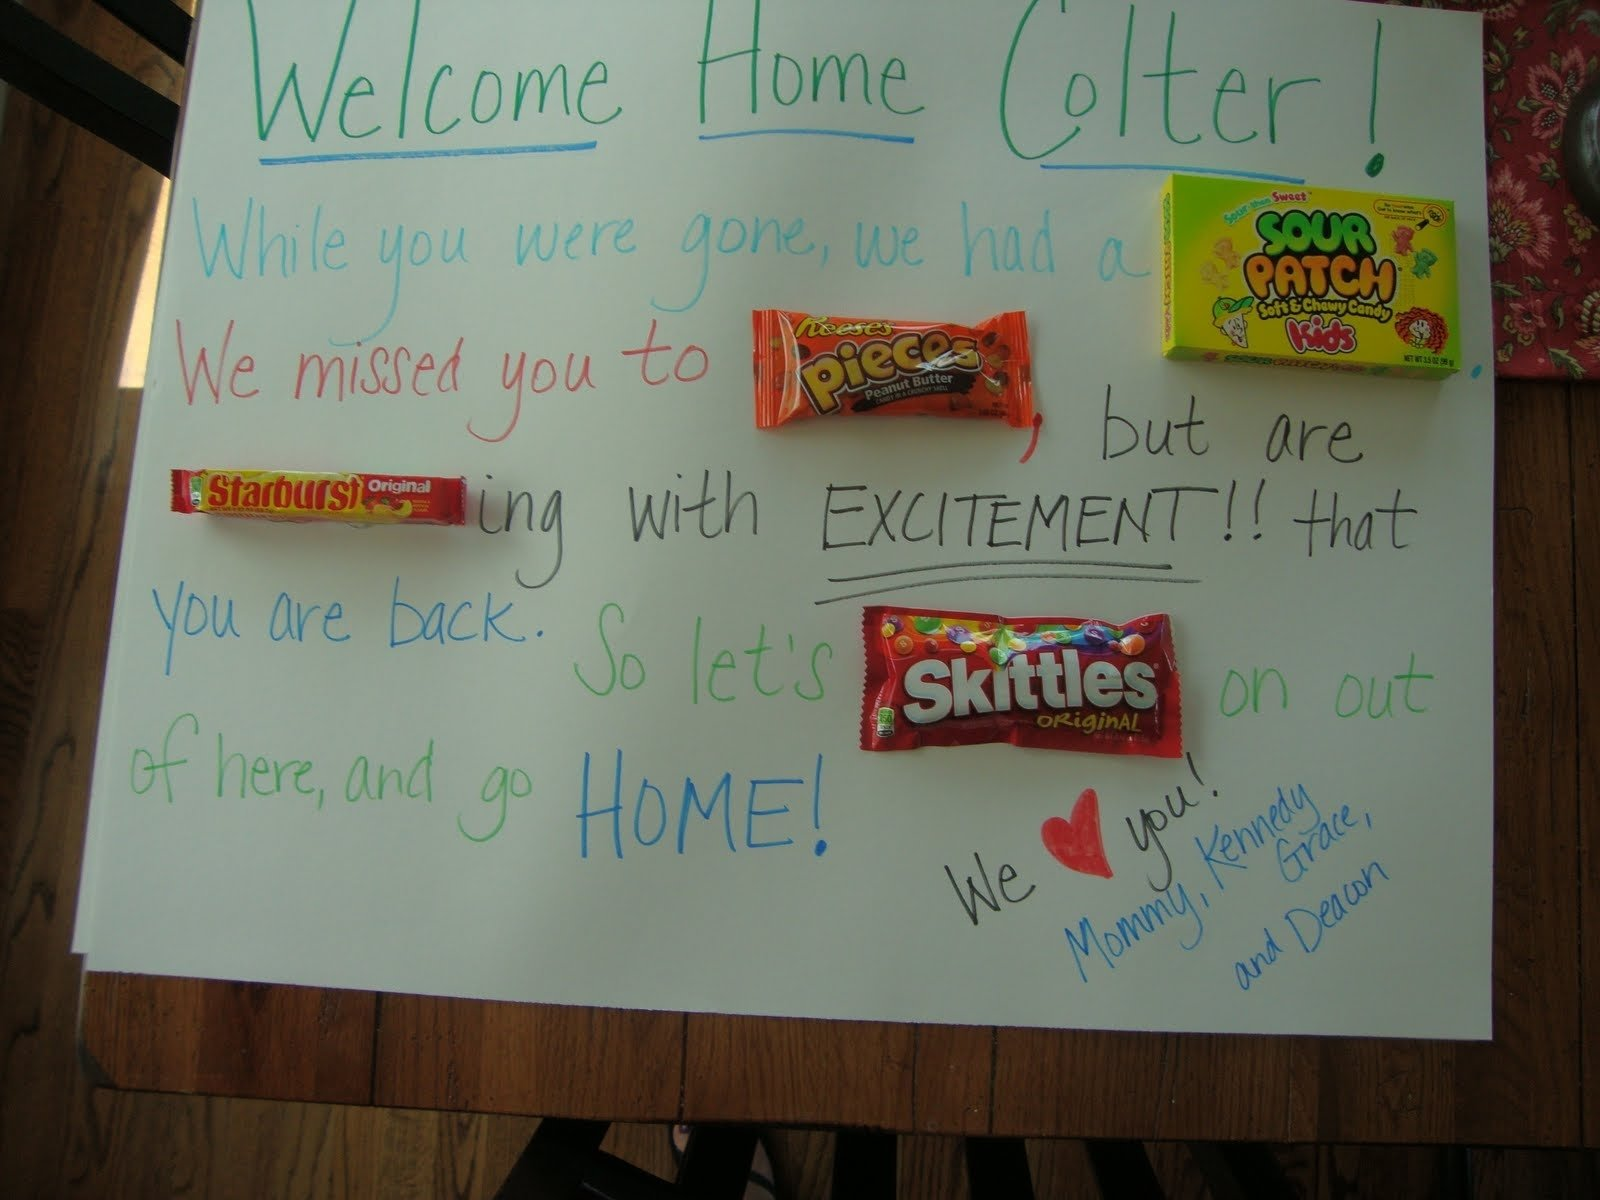 10 Most Recommended Military Welcome Home Sign Ideas welcome home sign one signs made cincinnati ques 77861 2020